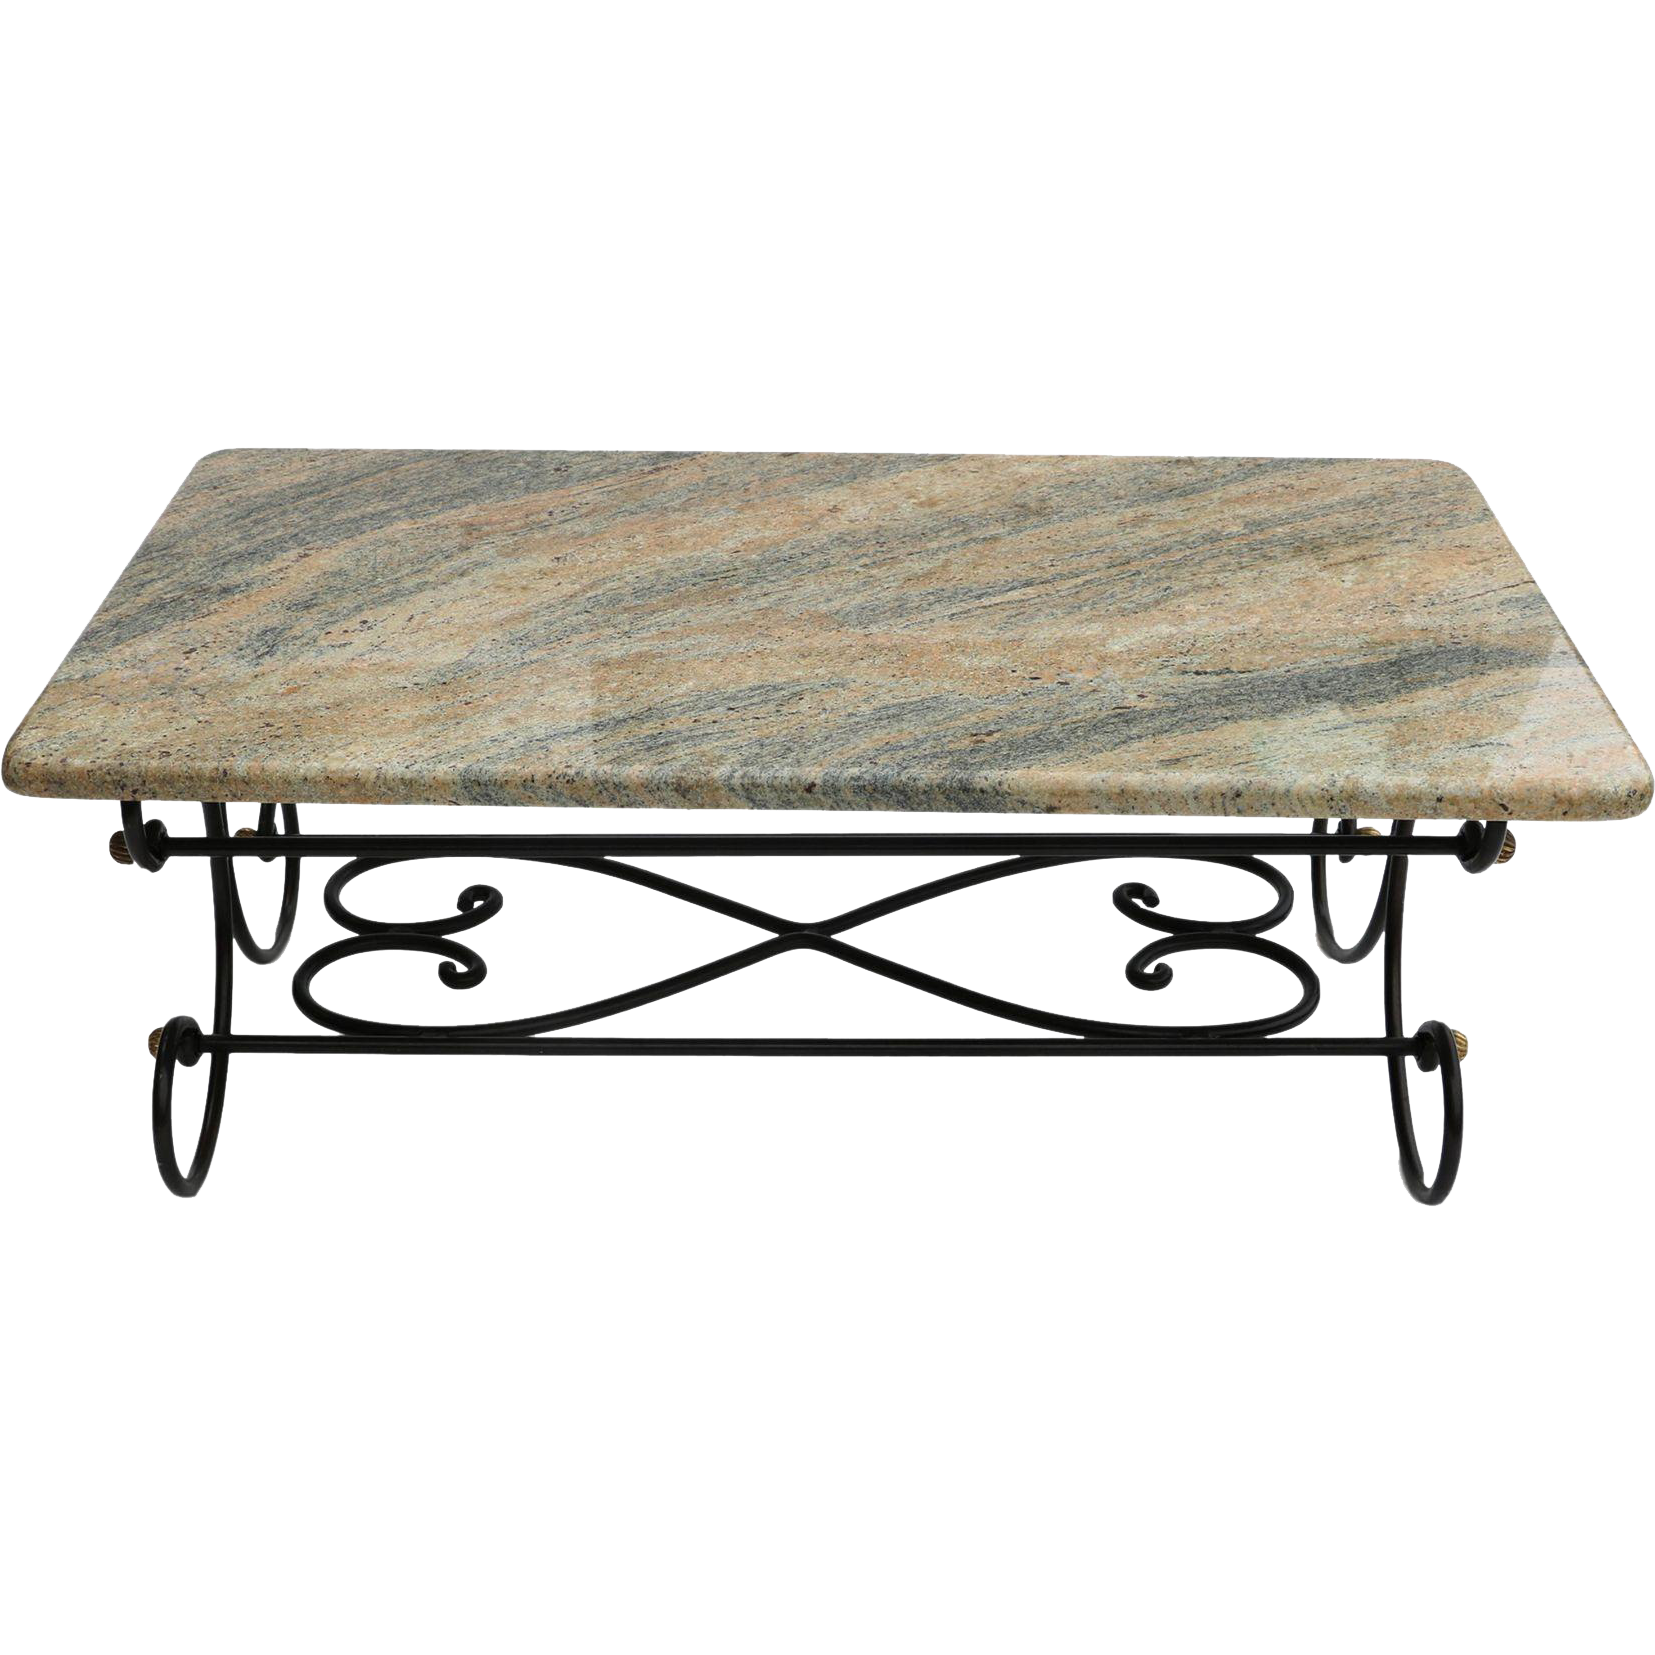 Granite topped coffee table wrought iron metal base from for Wrought iron coffee table base